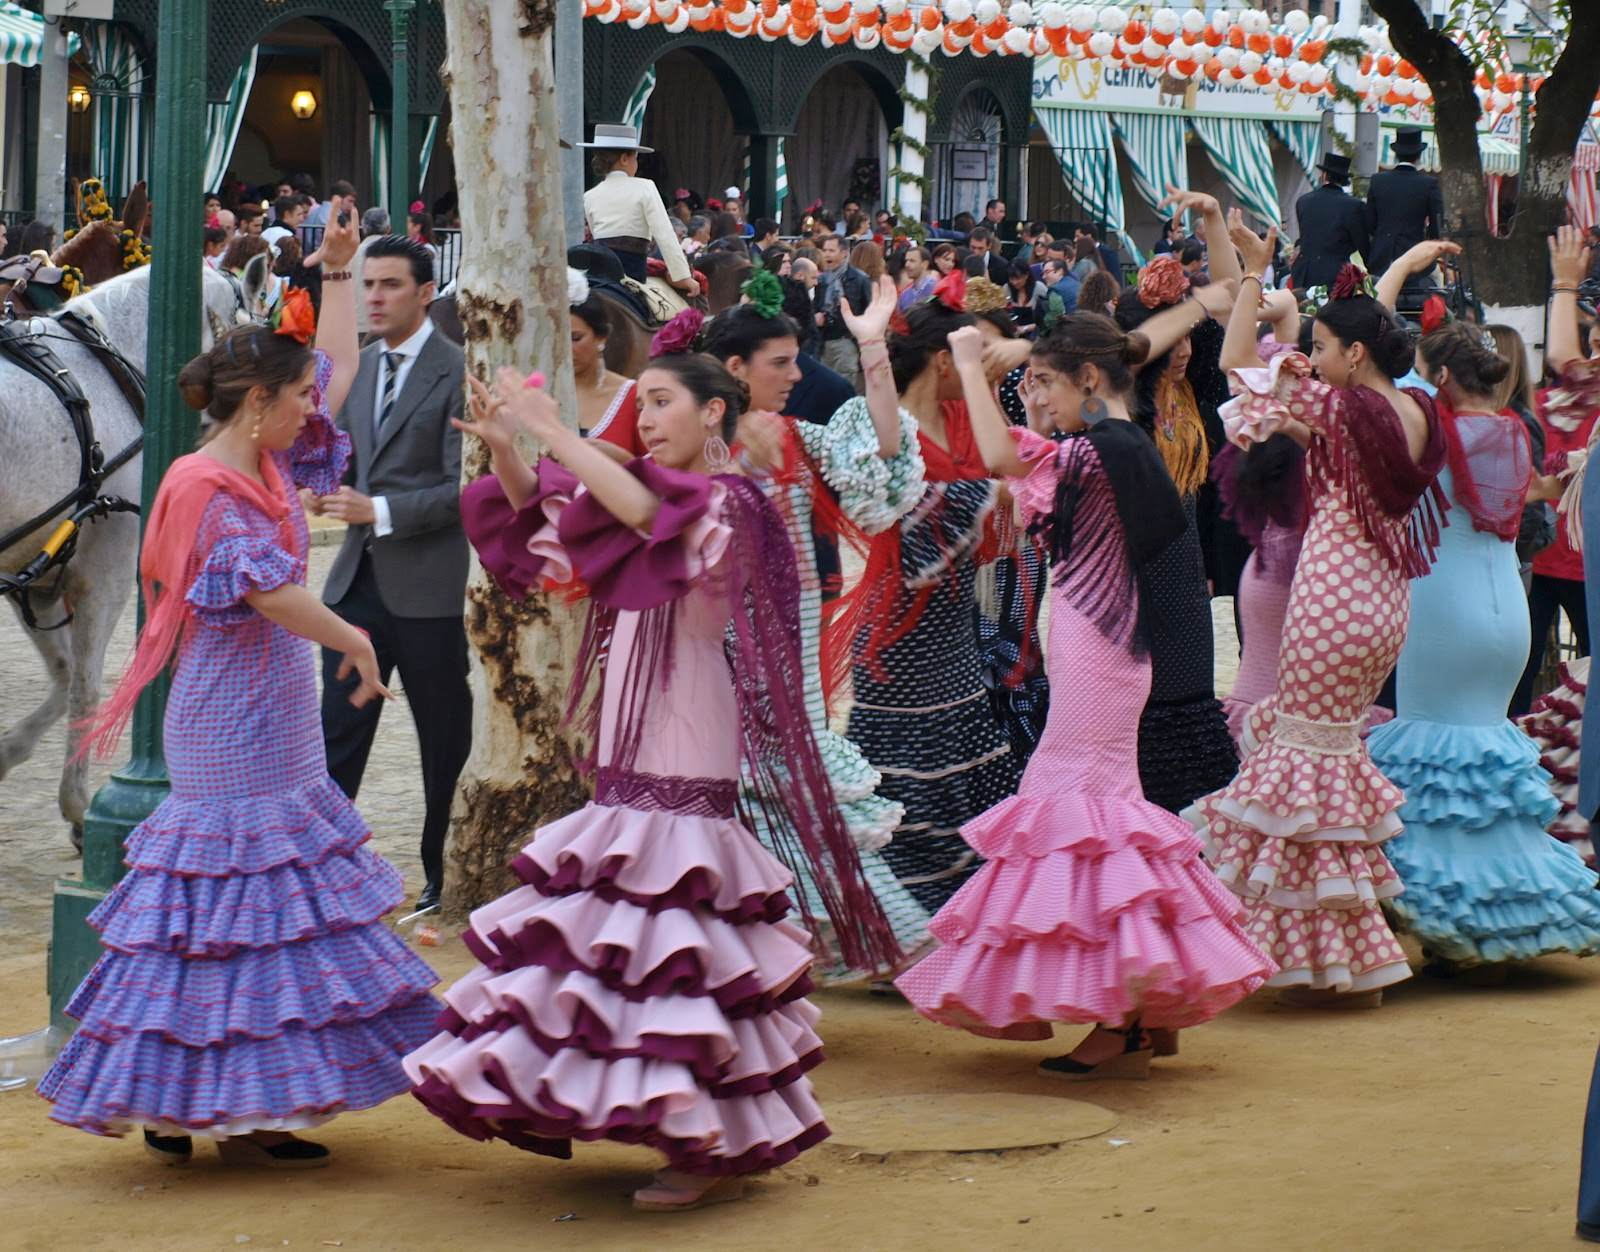 Activities & things to do in Seville